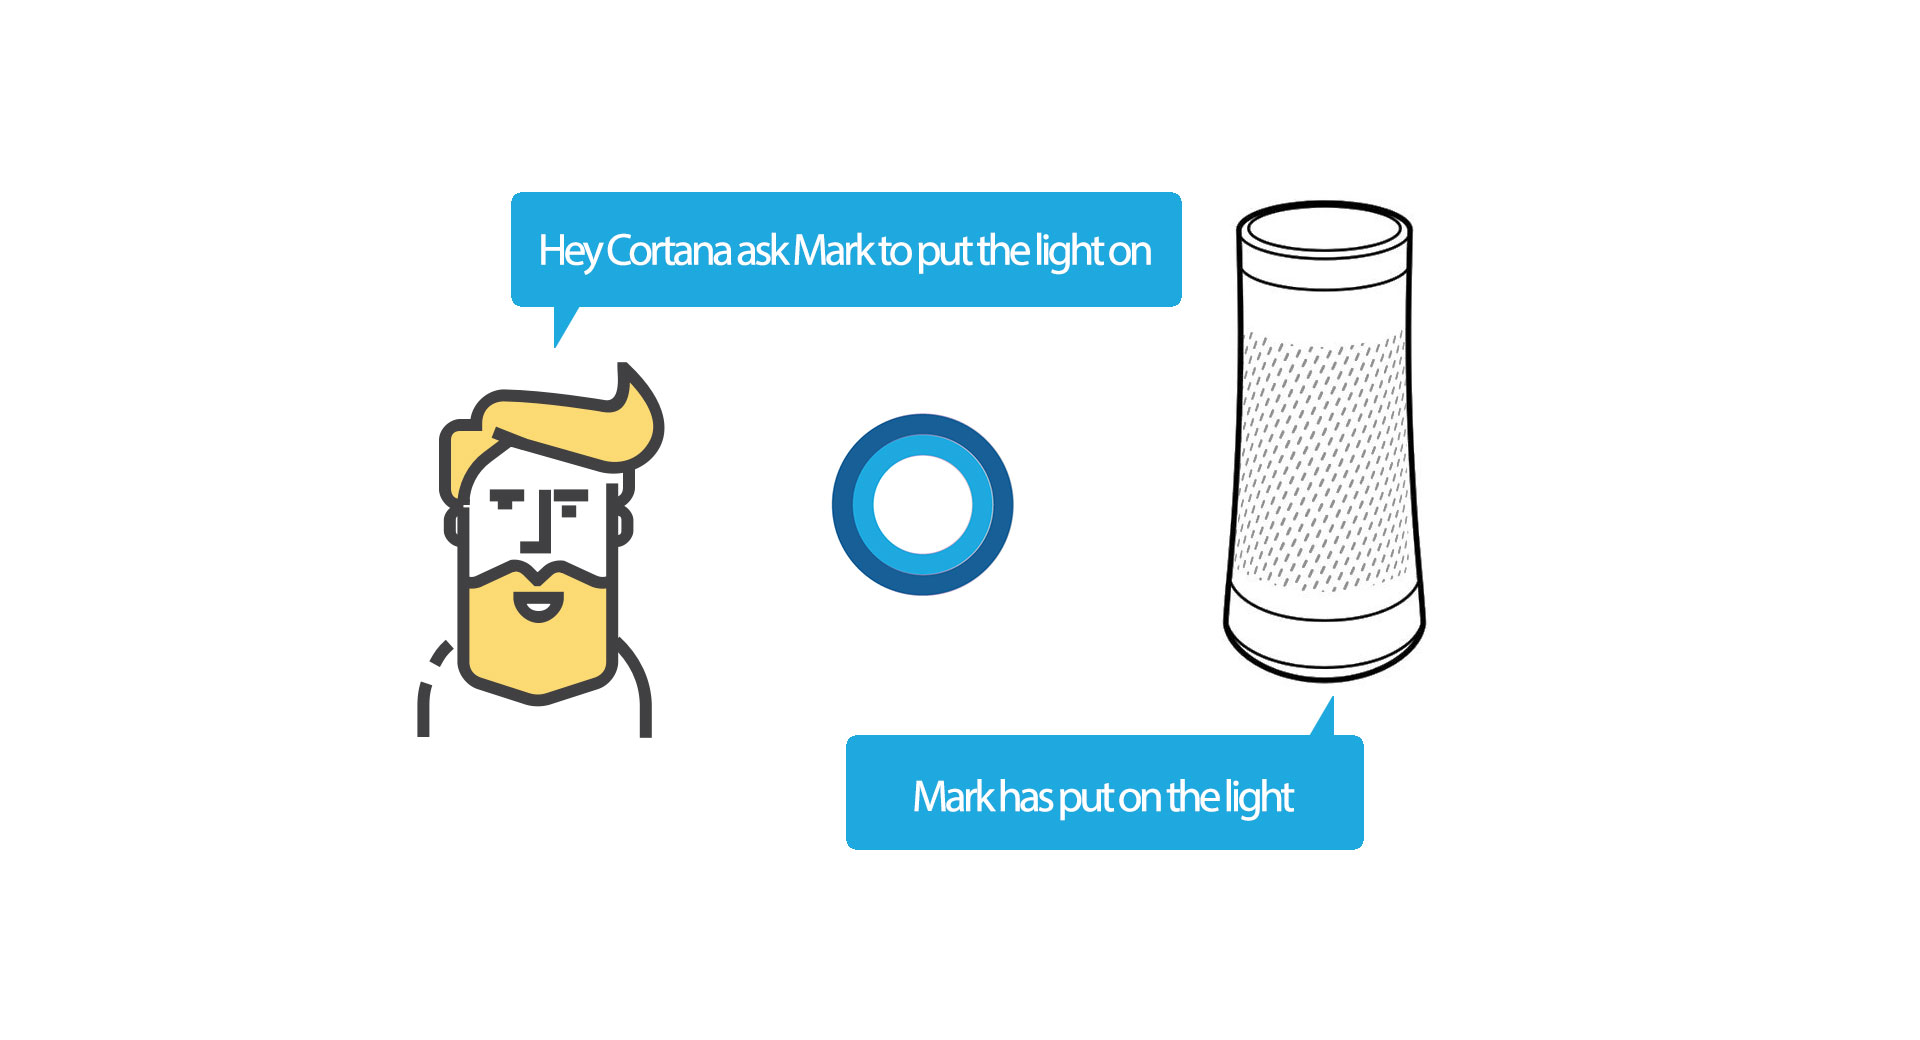 Create an Intelligent Chatbot for Cortana